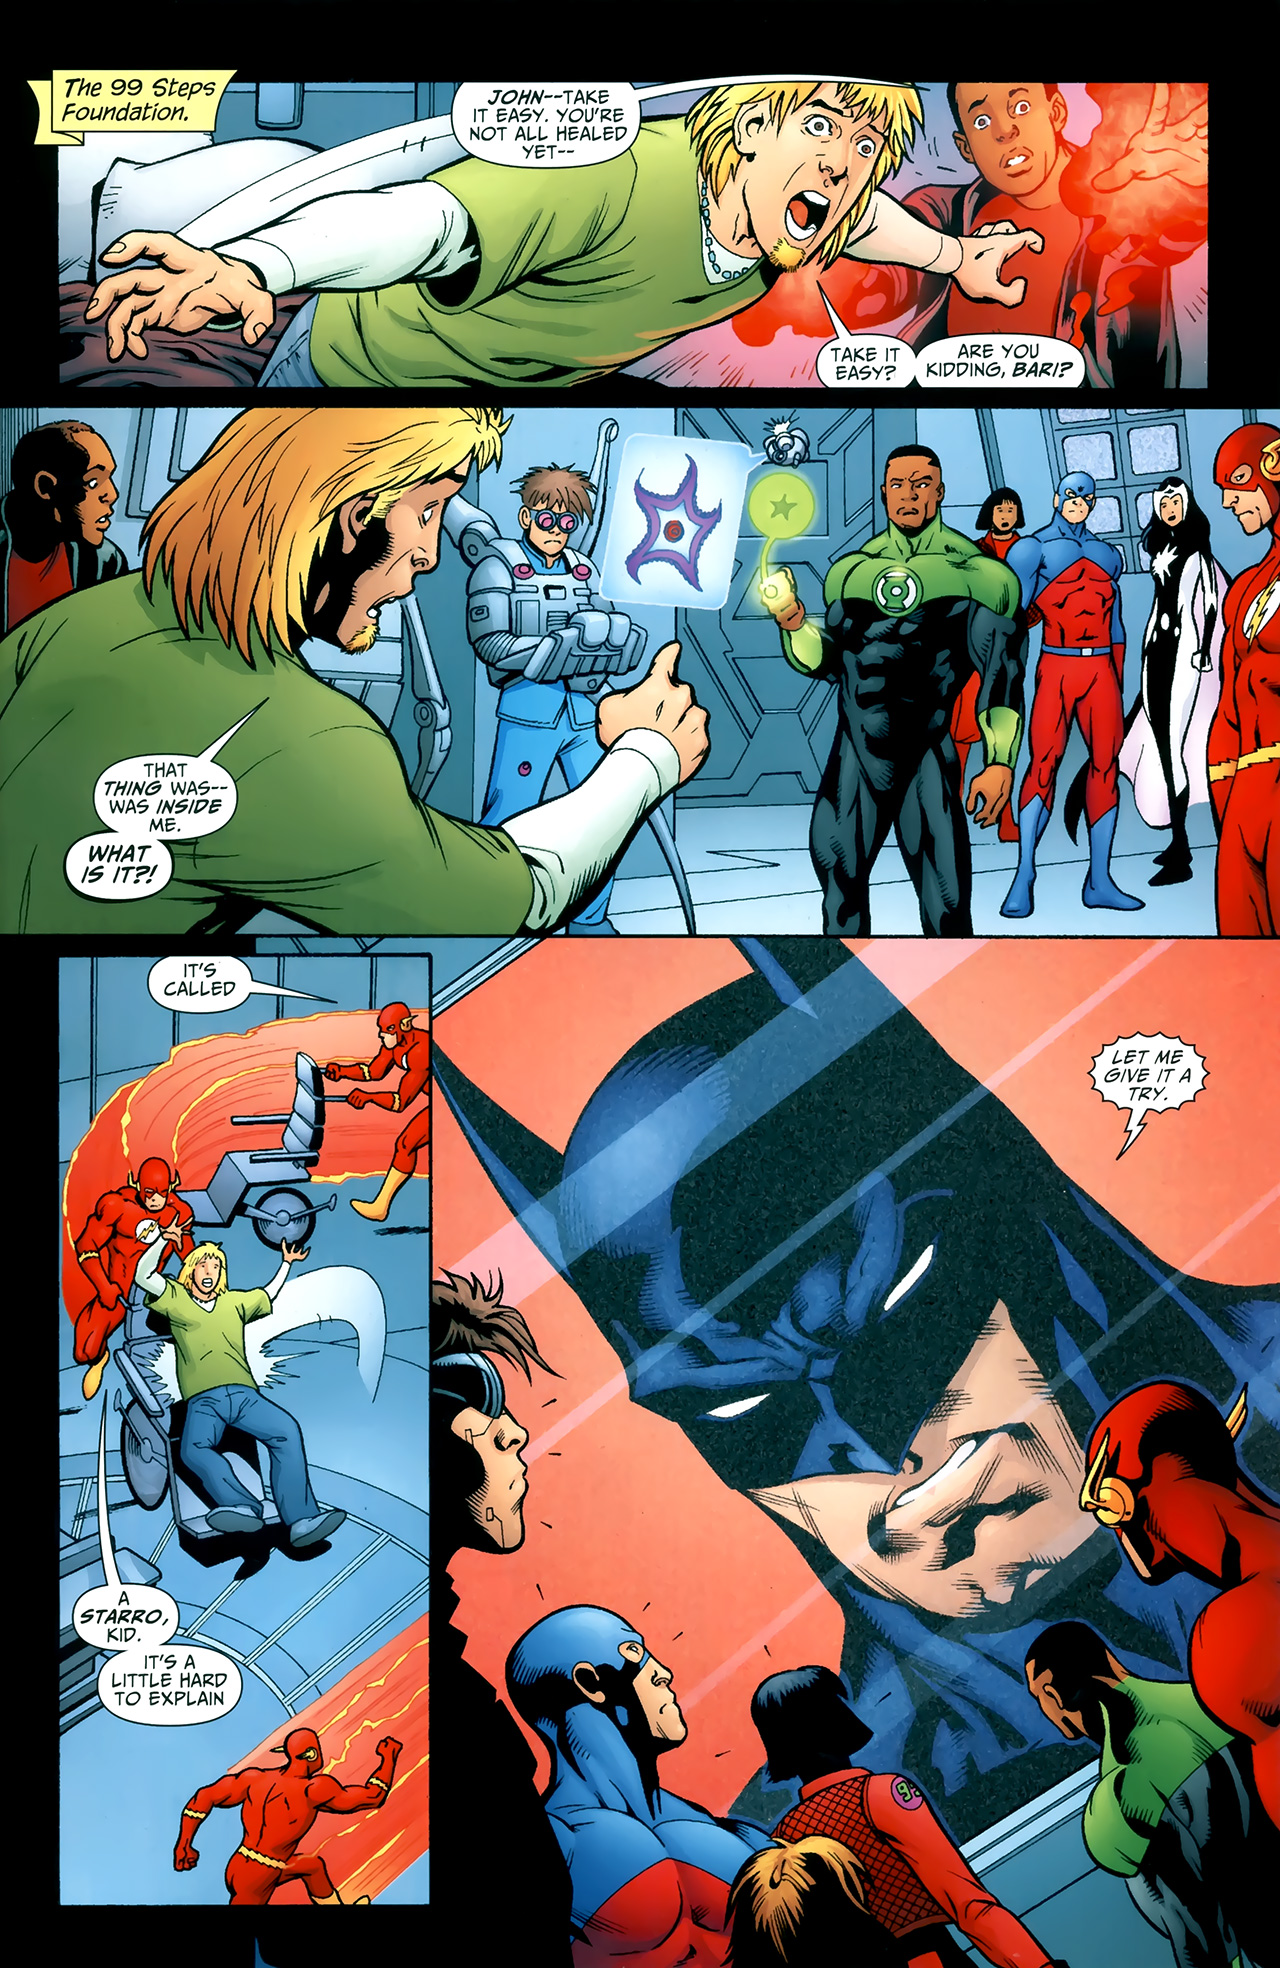 Read online Justice League of America/The 99 comic -  Issue #3 - 2